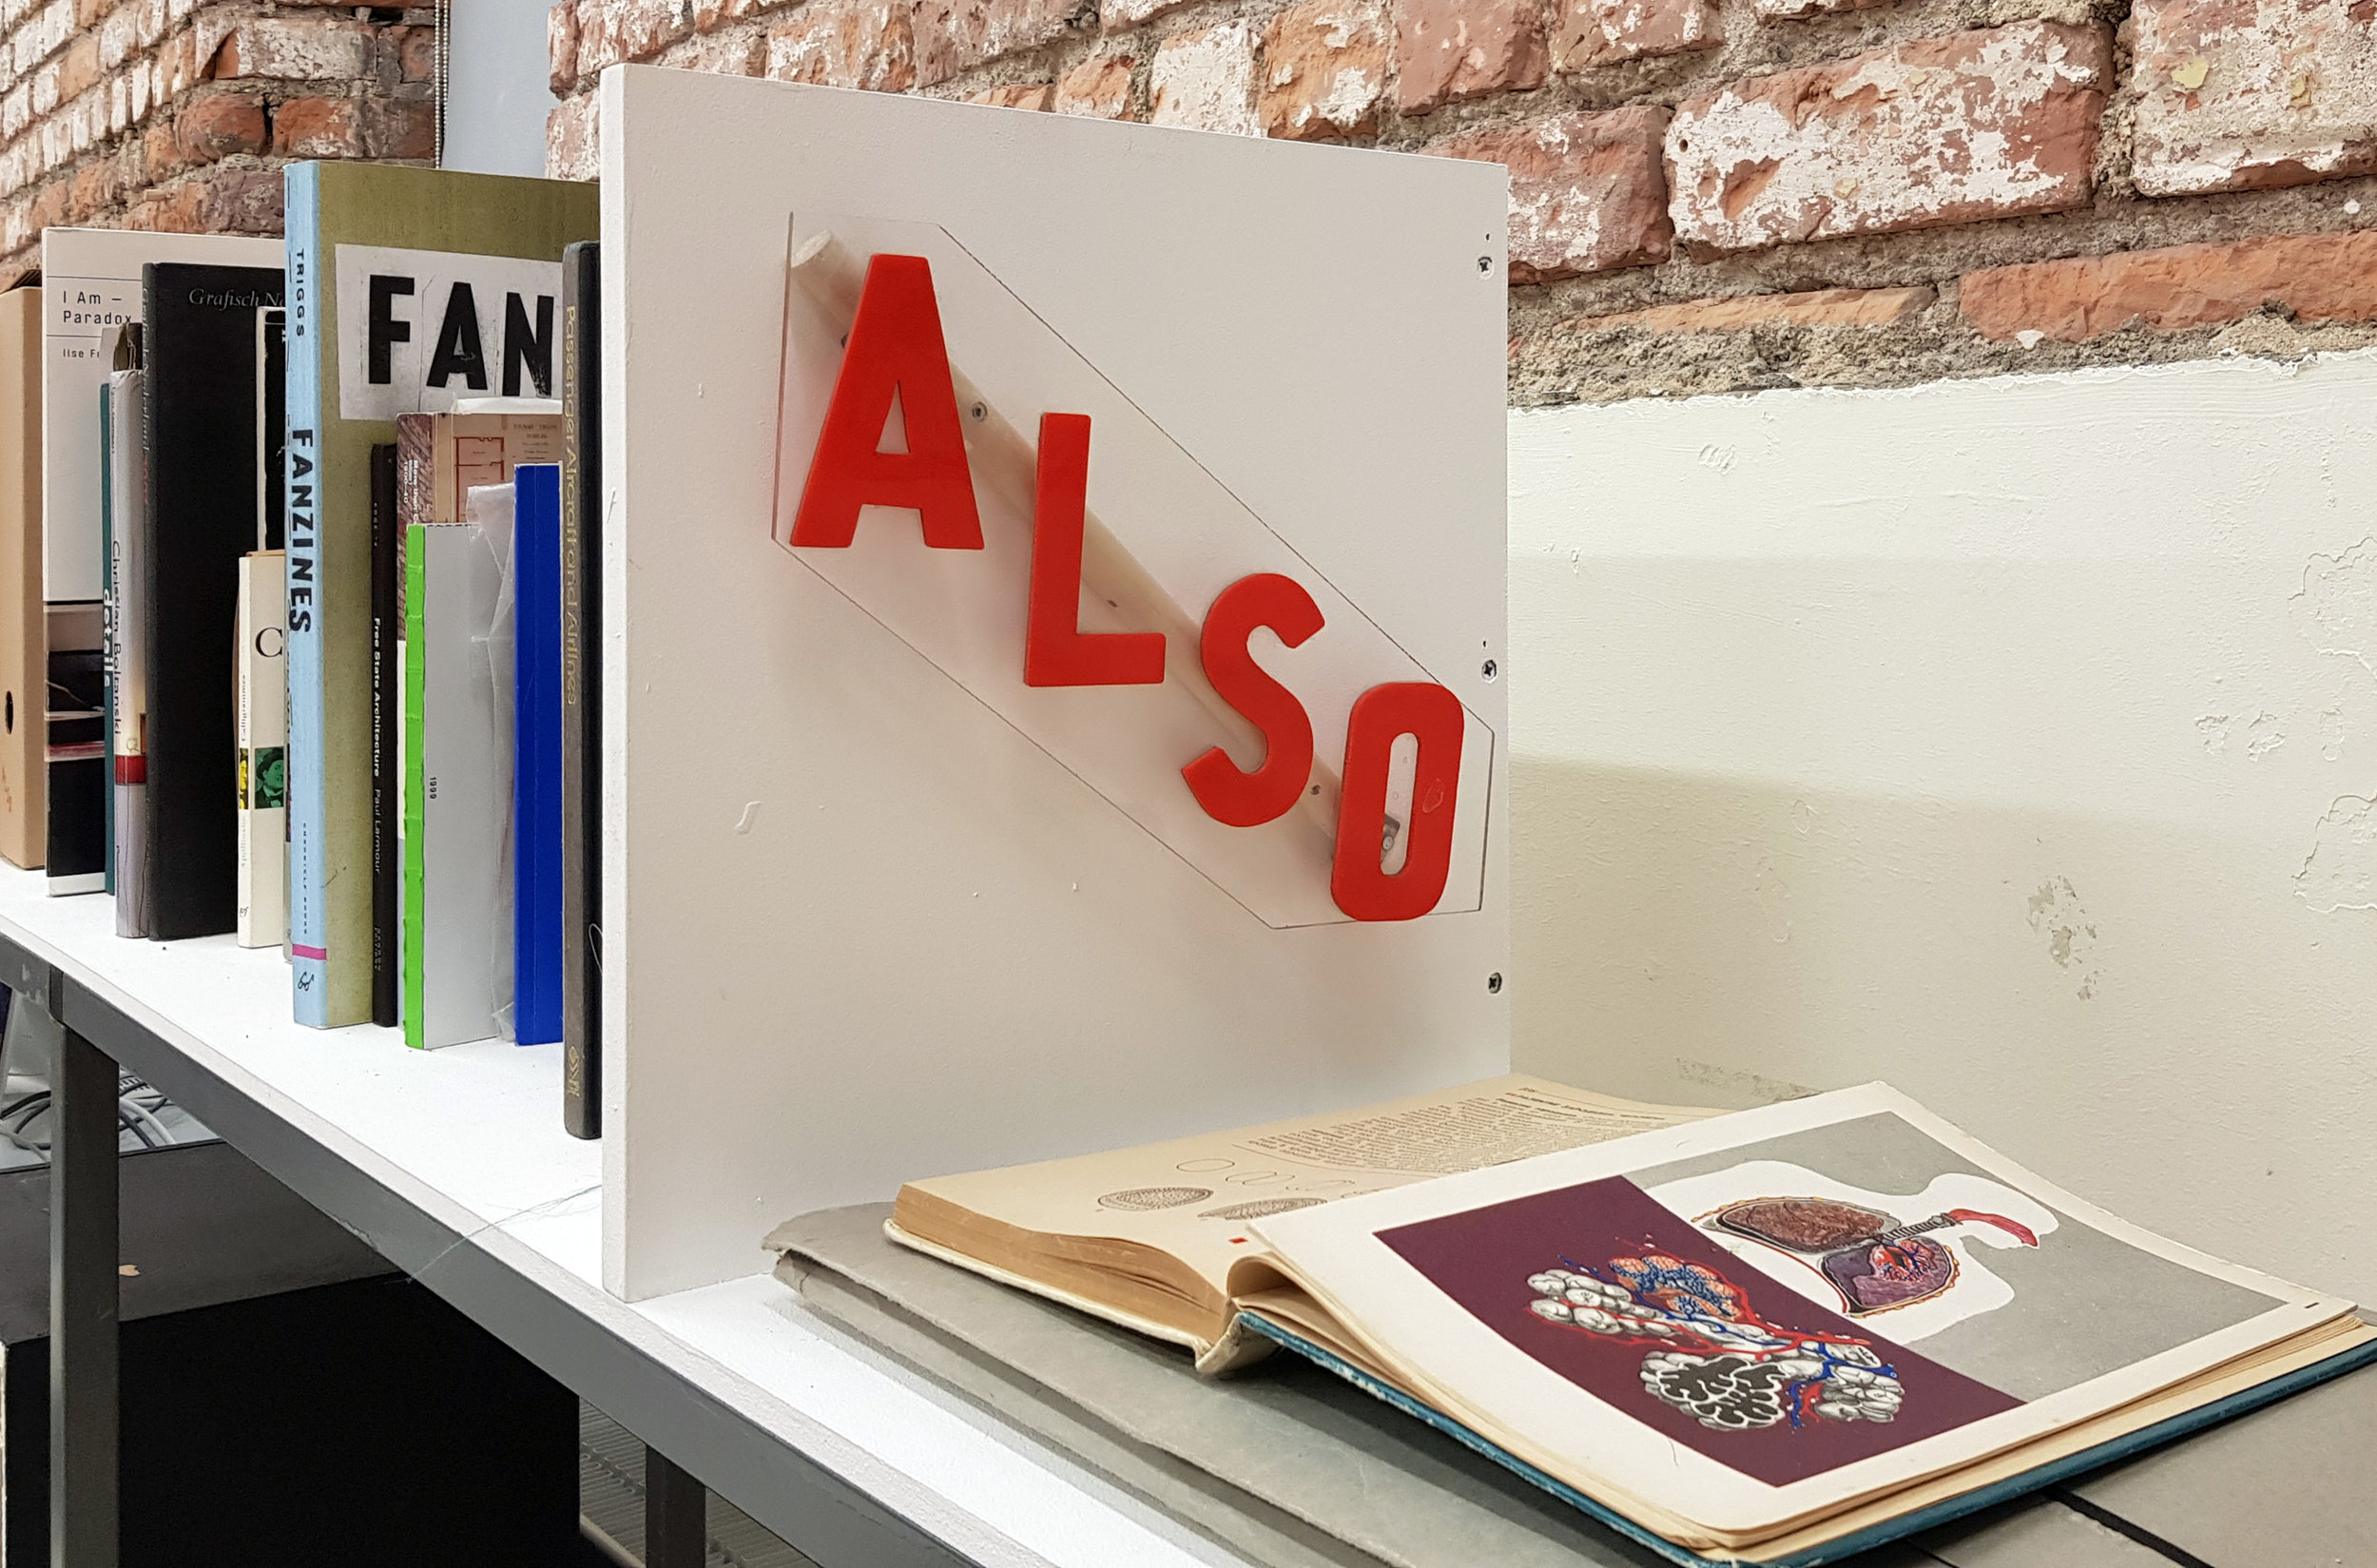 ALSO in-studio reference bookshelf. An eclectic, expanding collection of books and printed ephemera.